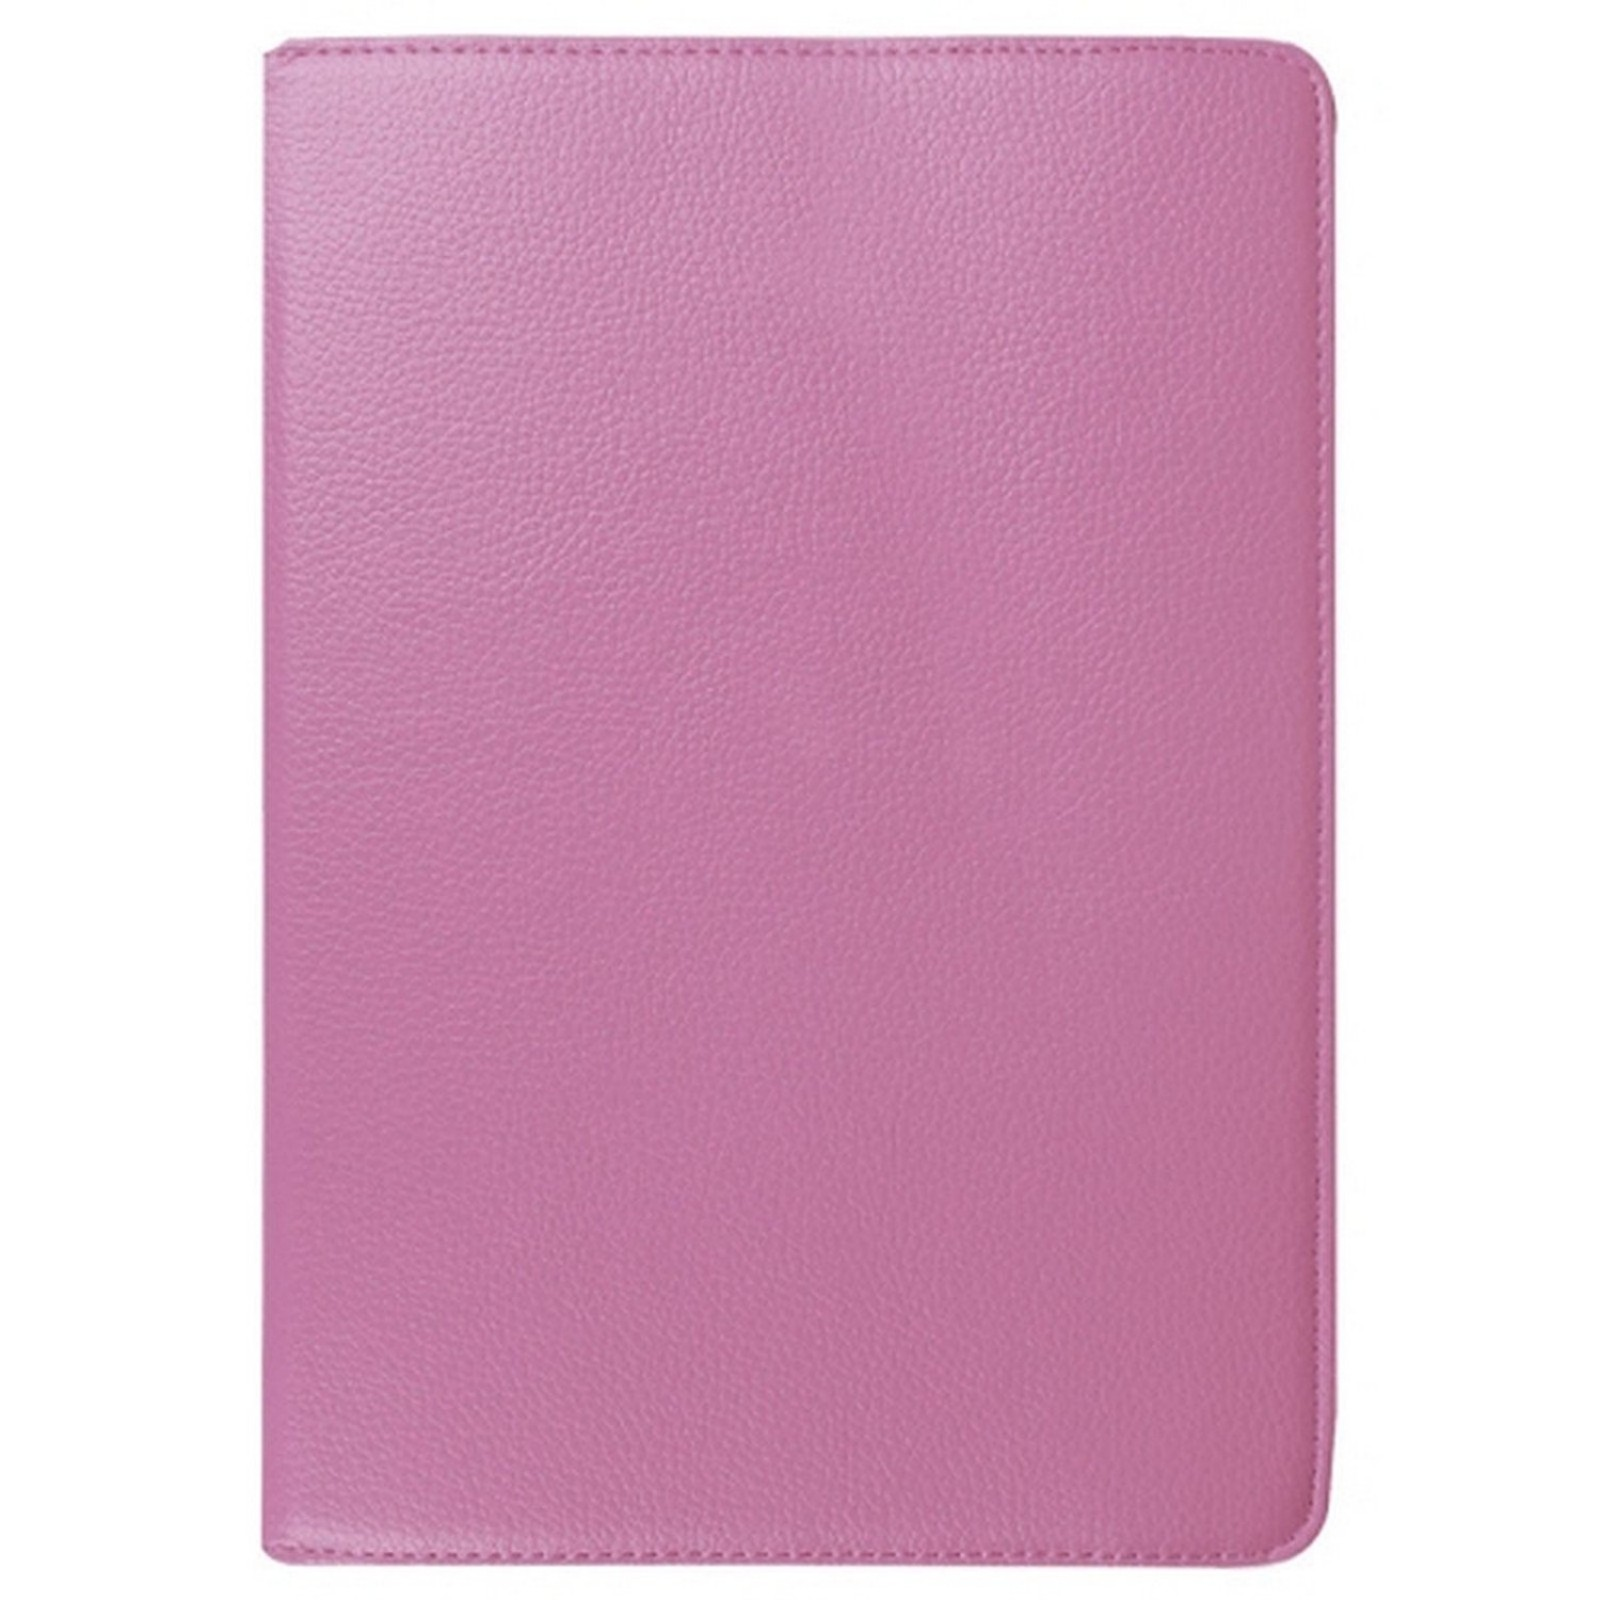 CUSTODIA-COVER-CASE-ROTABILE-PER-SAMSUNG-GALAXY-TAB-S2-9-7-034-SM-T815-SM-T819